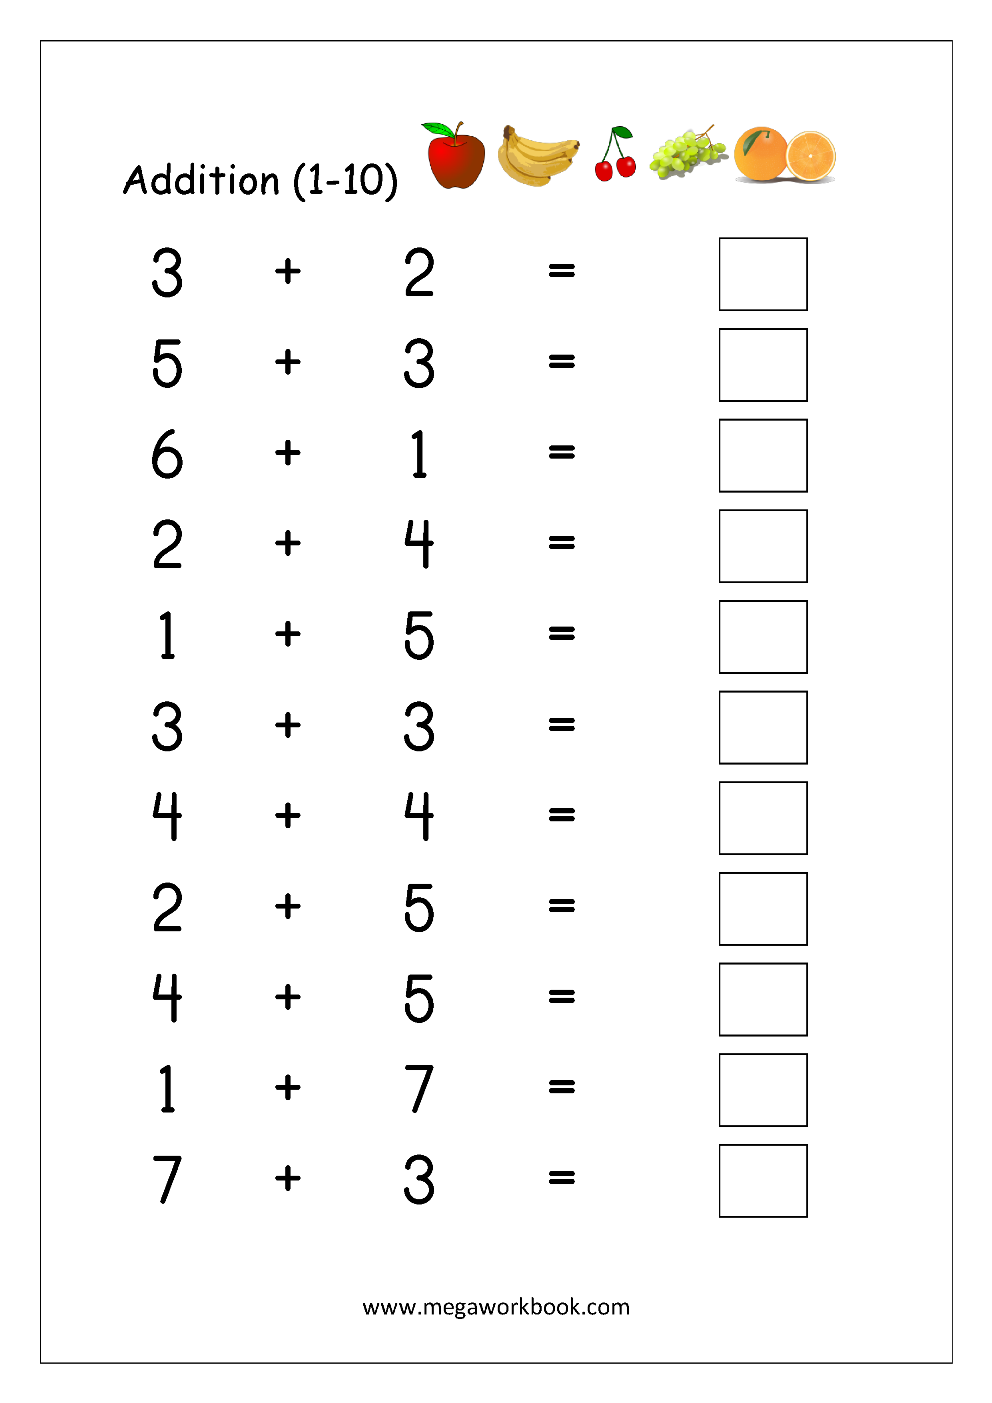 free printable number addition worksheets  for kindergarten   of addition  math printable worksheet  single digit addition